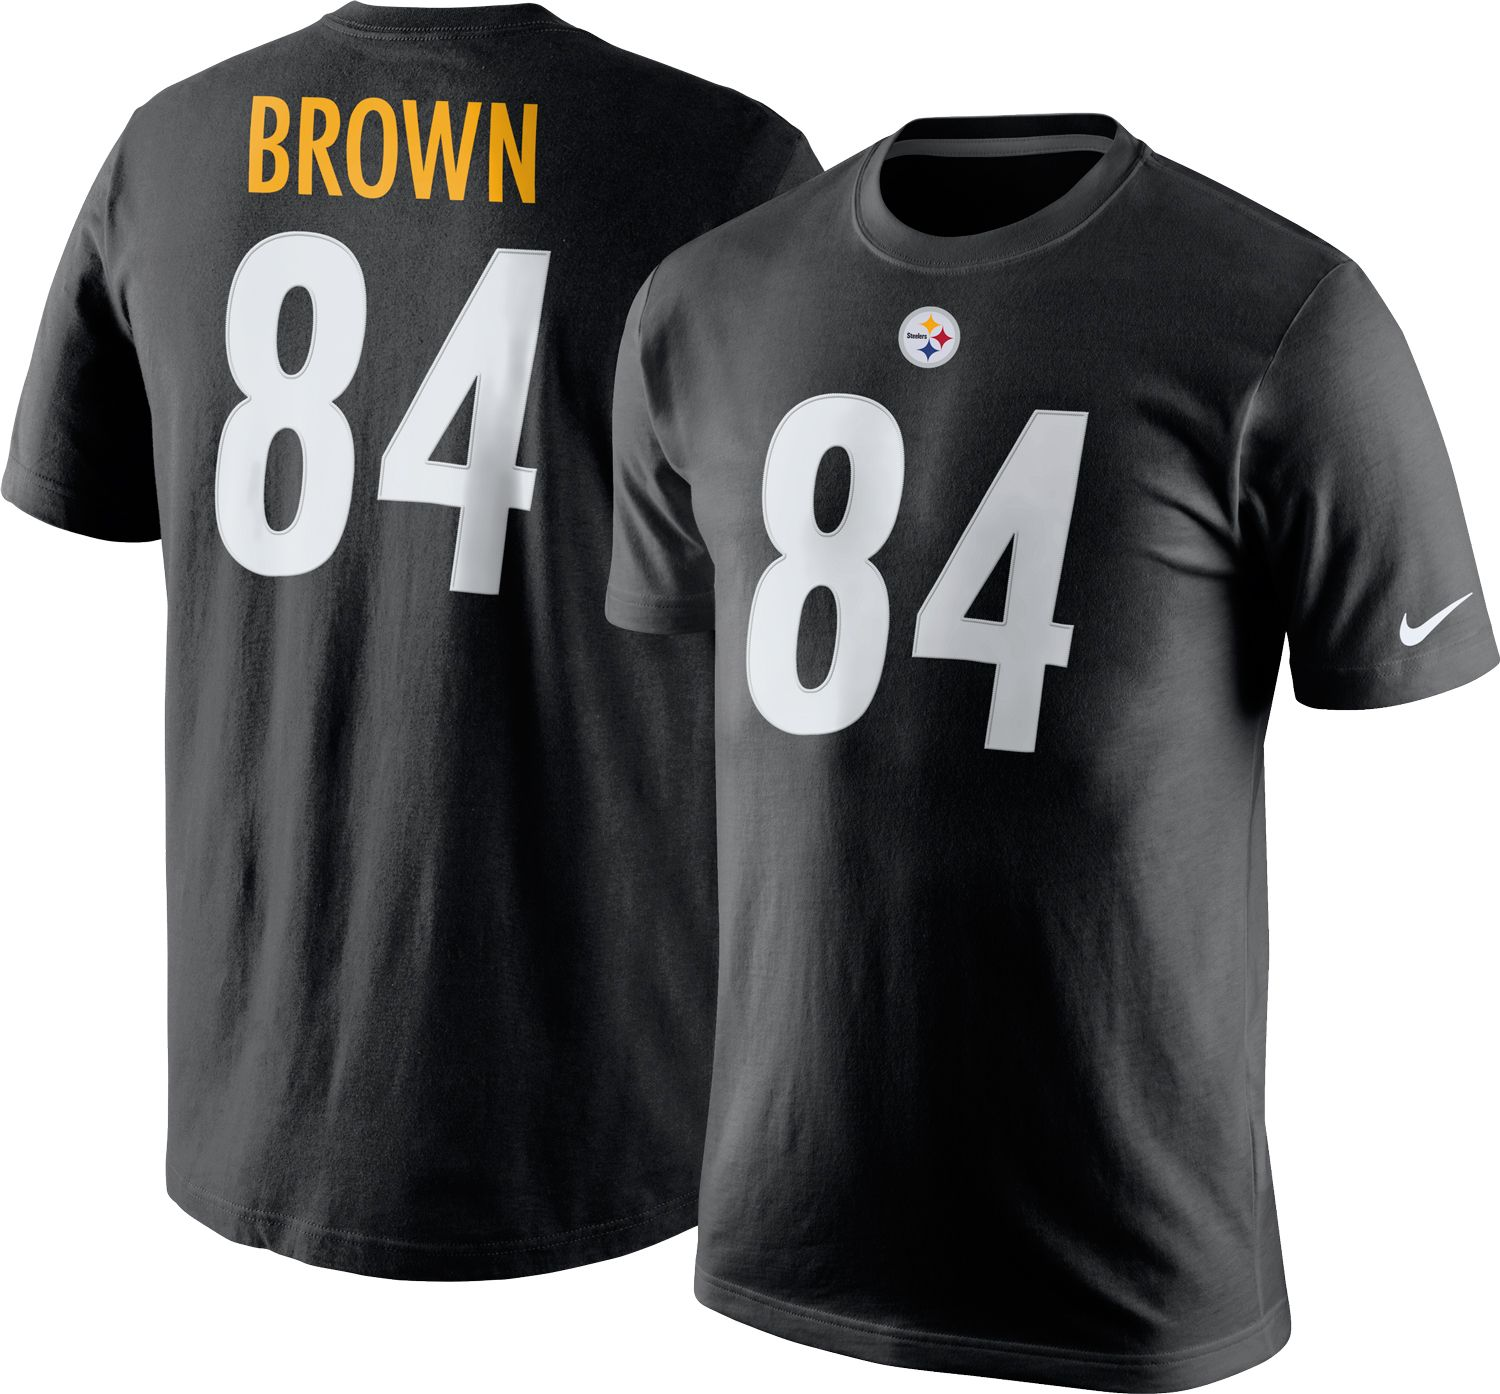 antonio brown jersey mens